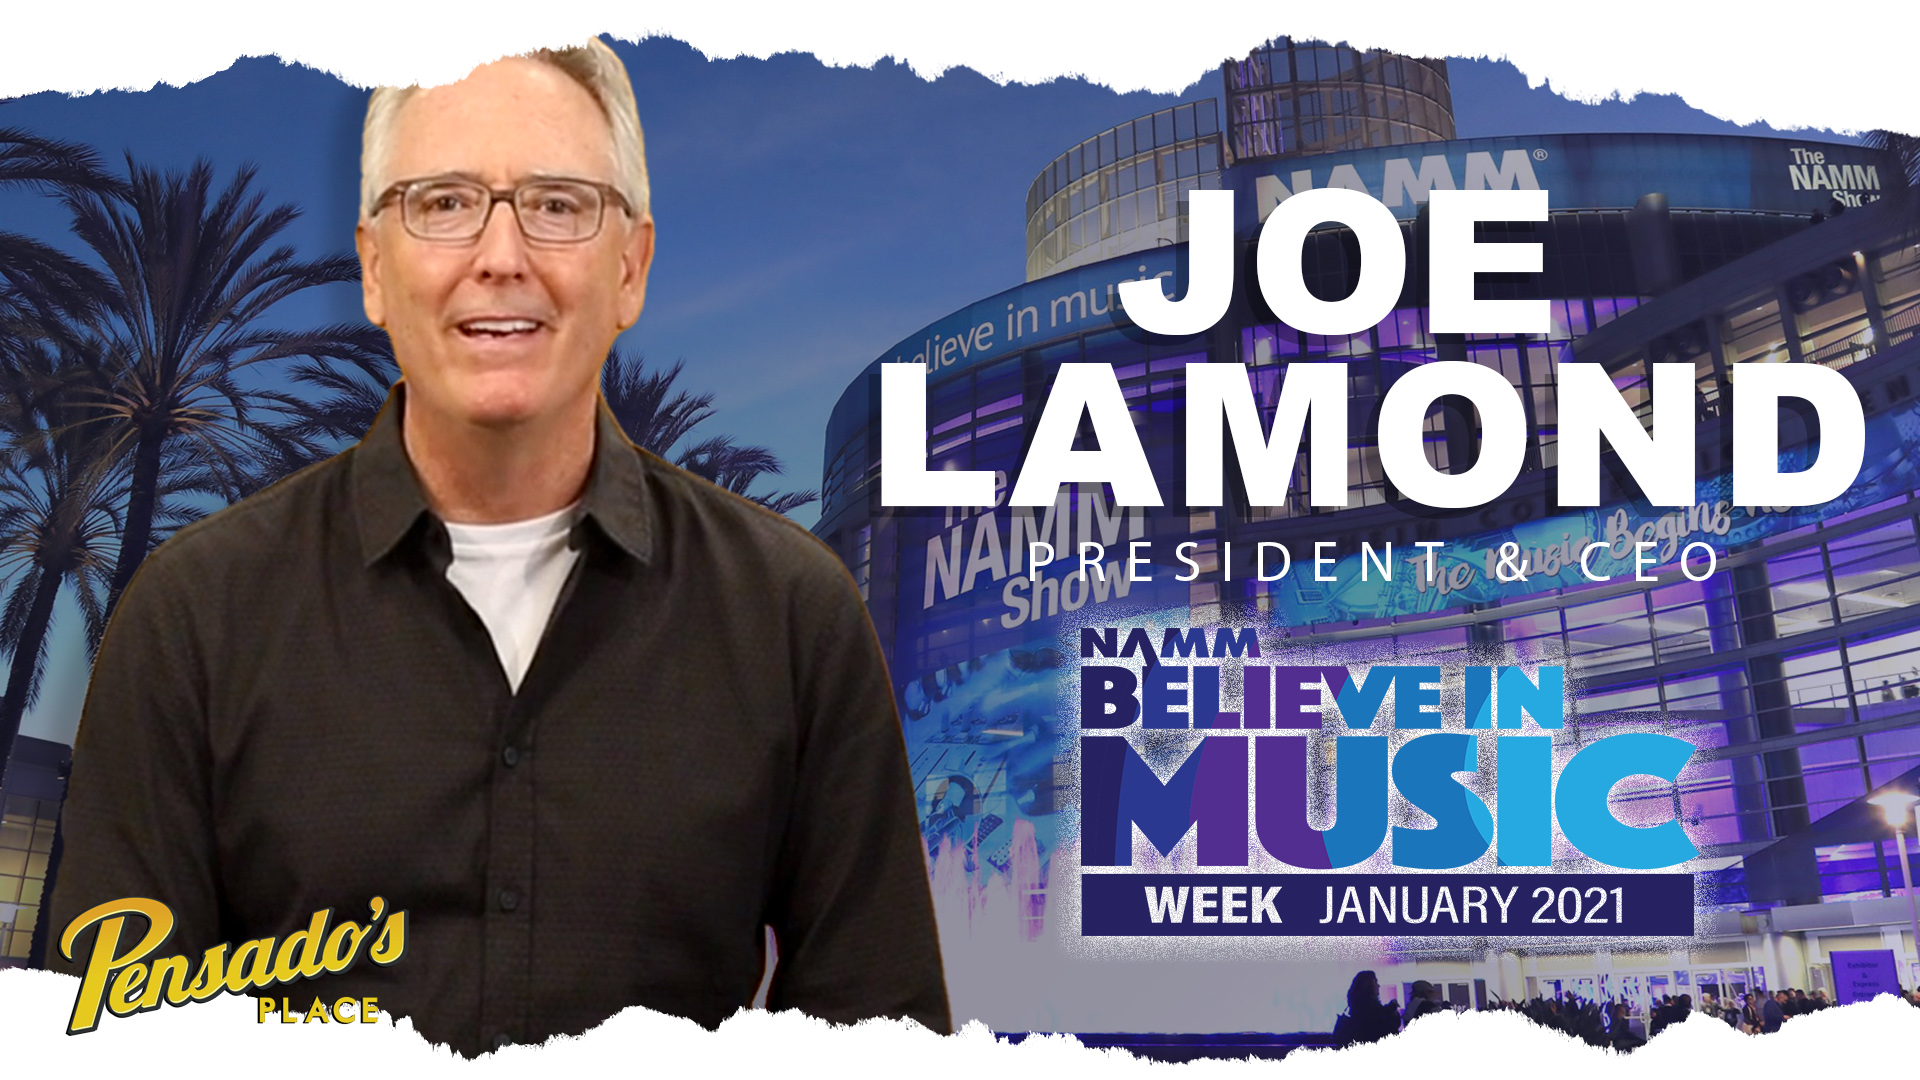 NAMM President & CEO, Joe Lamond